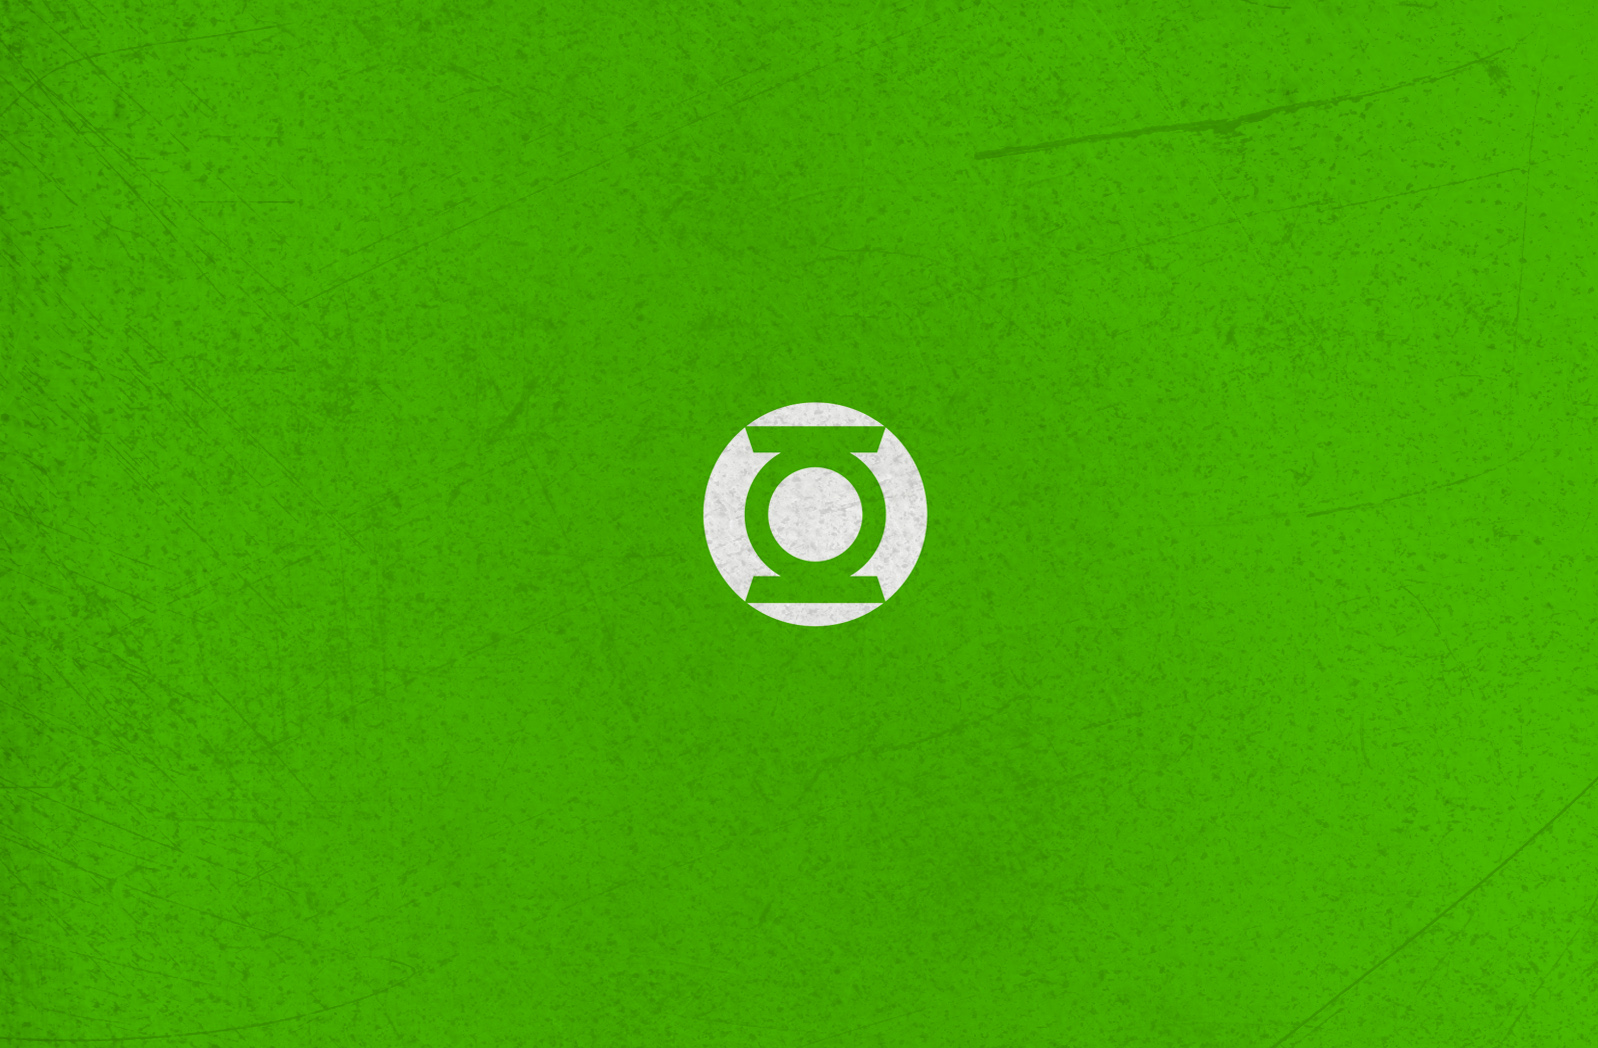 Green Lantern Comics Logo Minimal HD Wallpapers Download 1598x1048